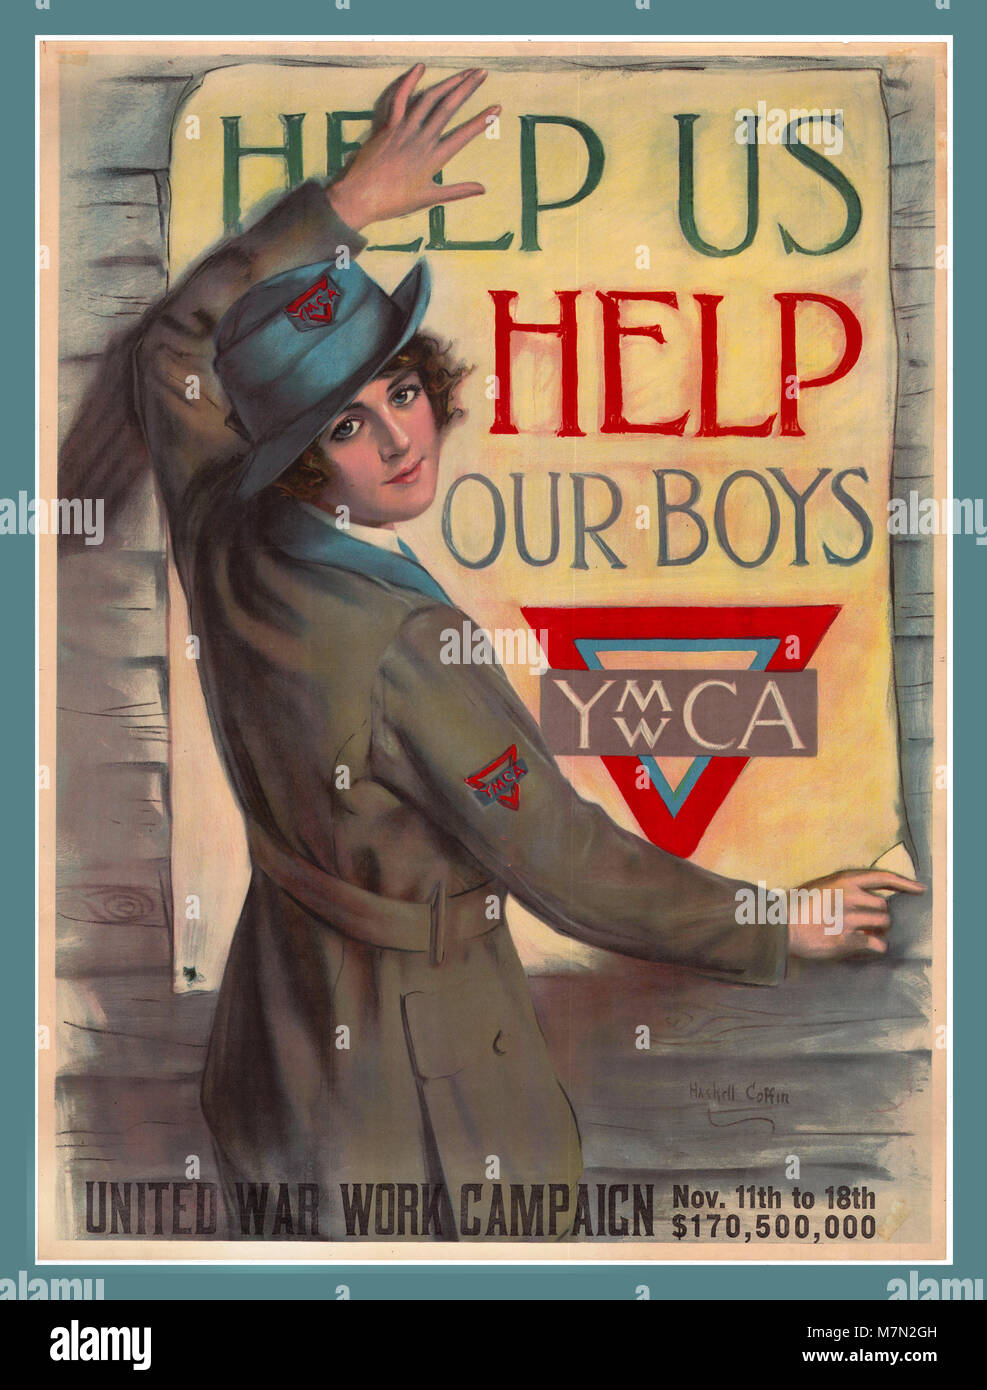 Vintage WW1 propaganda appeal poster 'Help us help our boys' by artist Haskell Coffin for the 'United - Stock Image